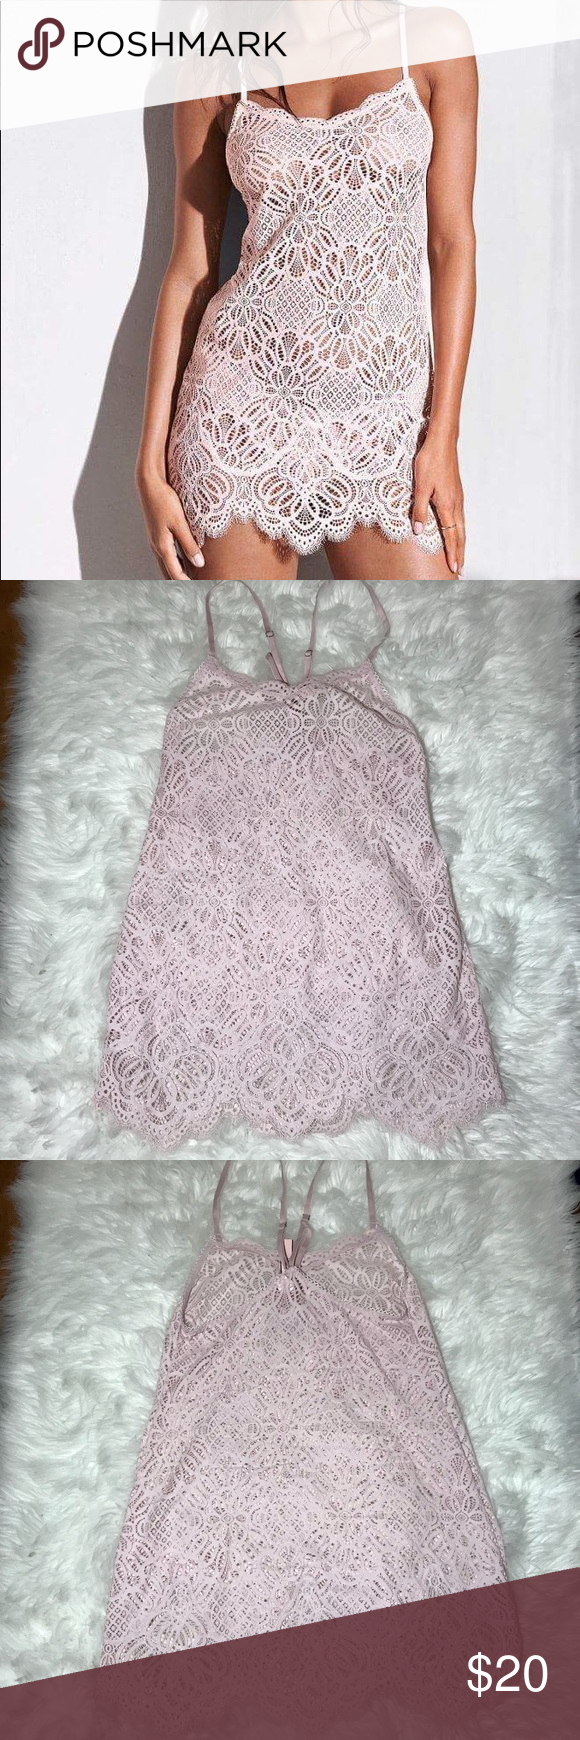 VS Small Lace Slip New, marked as XS then written Small, I assumed it's customer return, or just a mistake,I'm adding pictures with measurements, 14.5 inch and 19 inch(pic 6 and 7), few pen marks inside pic 5; light pink color Victoria's Secret Intimates & Sleepwear Chemises & Slips